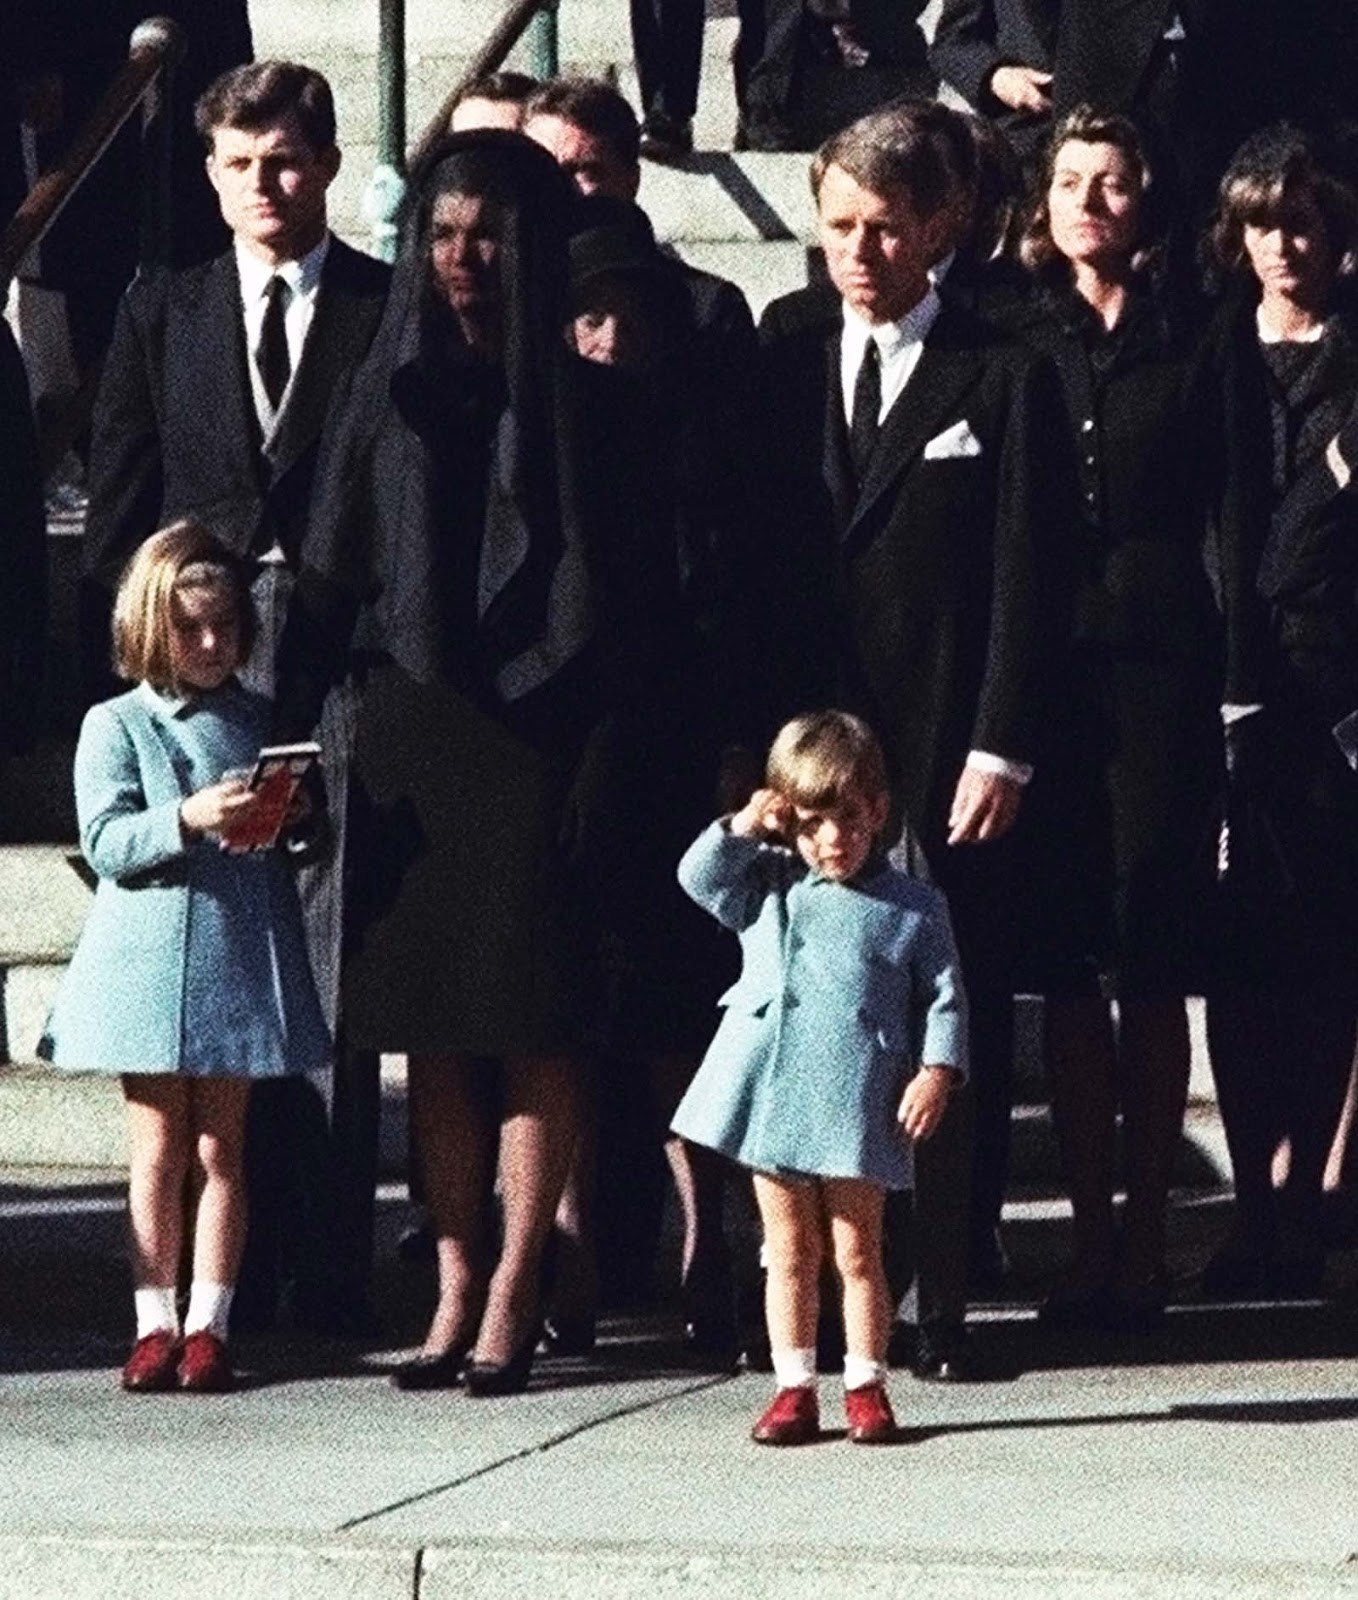 John F. Kennedy Jr., who turns three today, salutes as the casket of his father, the late President John F. Kennedy. Widow Jacqueline Kennedy, center, and daughter Caroline Kennedy are accompanied by the late president's brothers Sen. Edward Kennedy, left, and Attorney General Robert Kennedy.